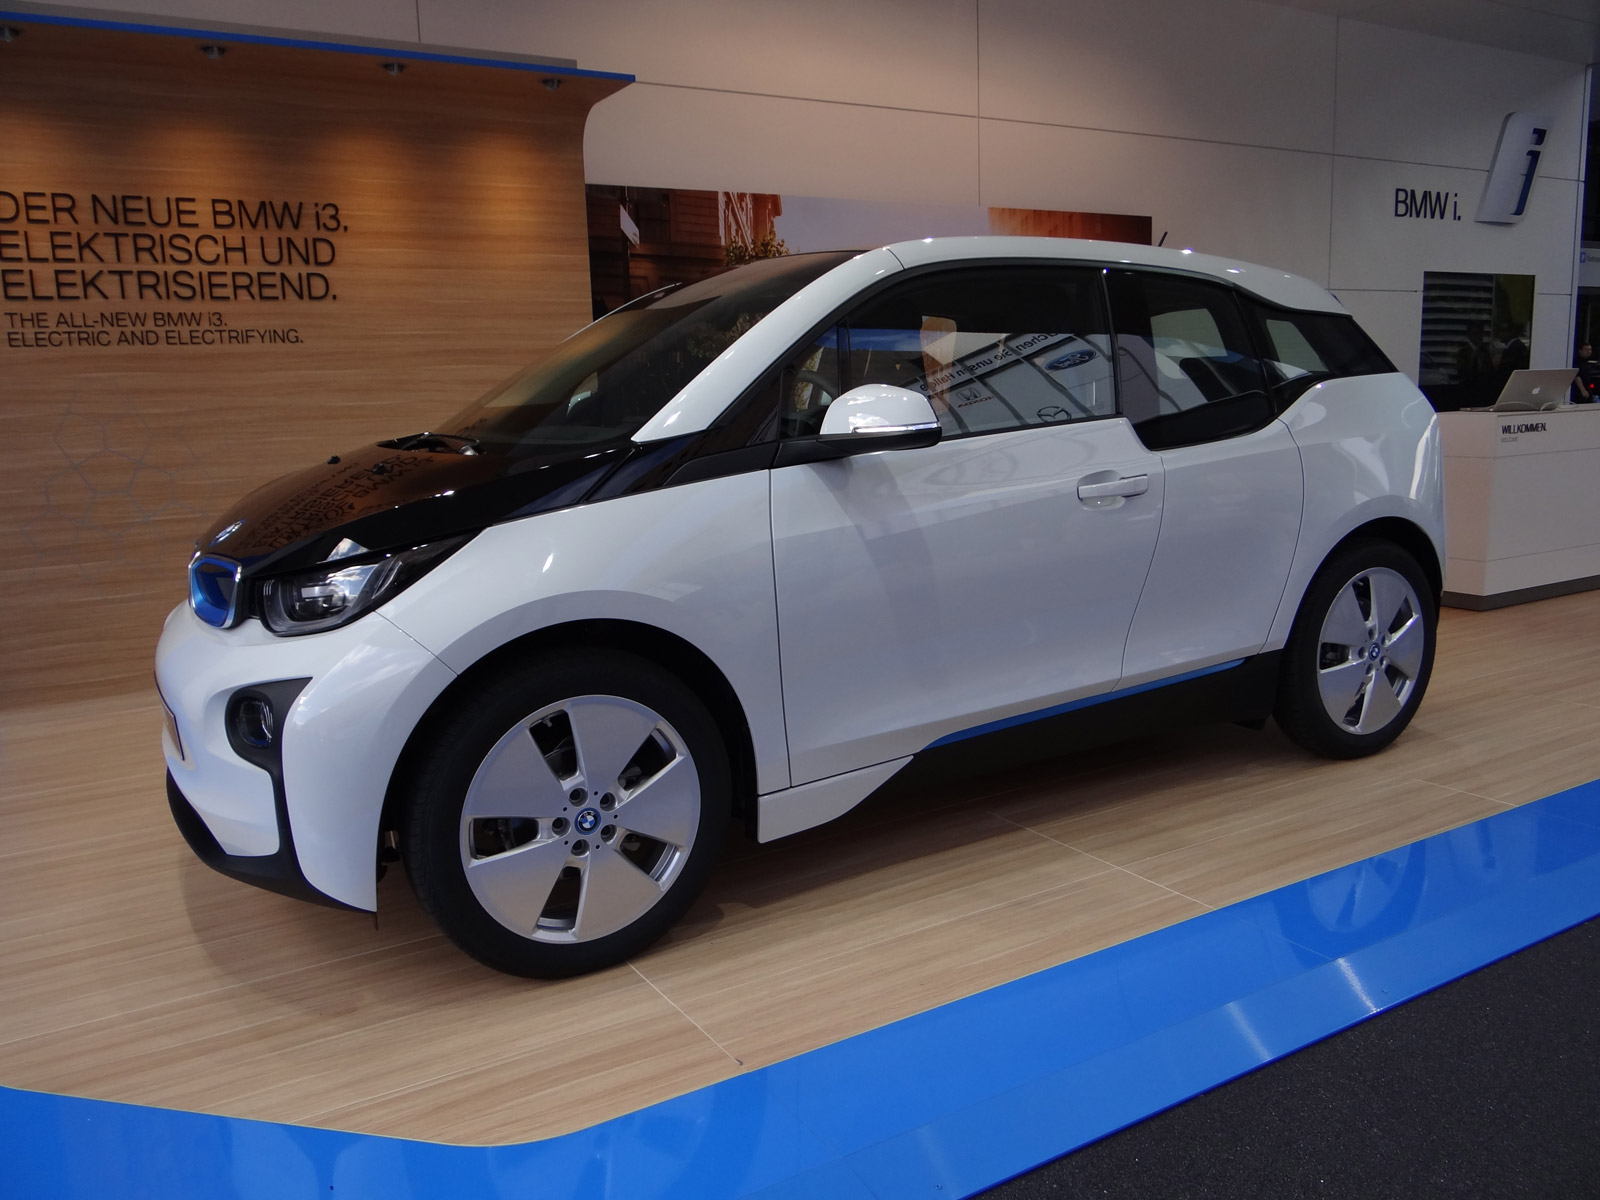 2014 Bmw I3 With Range Extender Priced At 46 125 Or 3 850 More